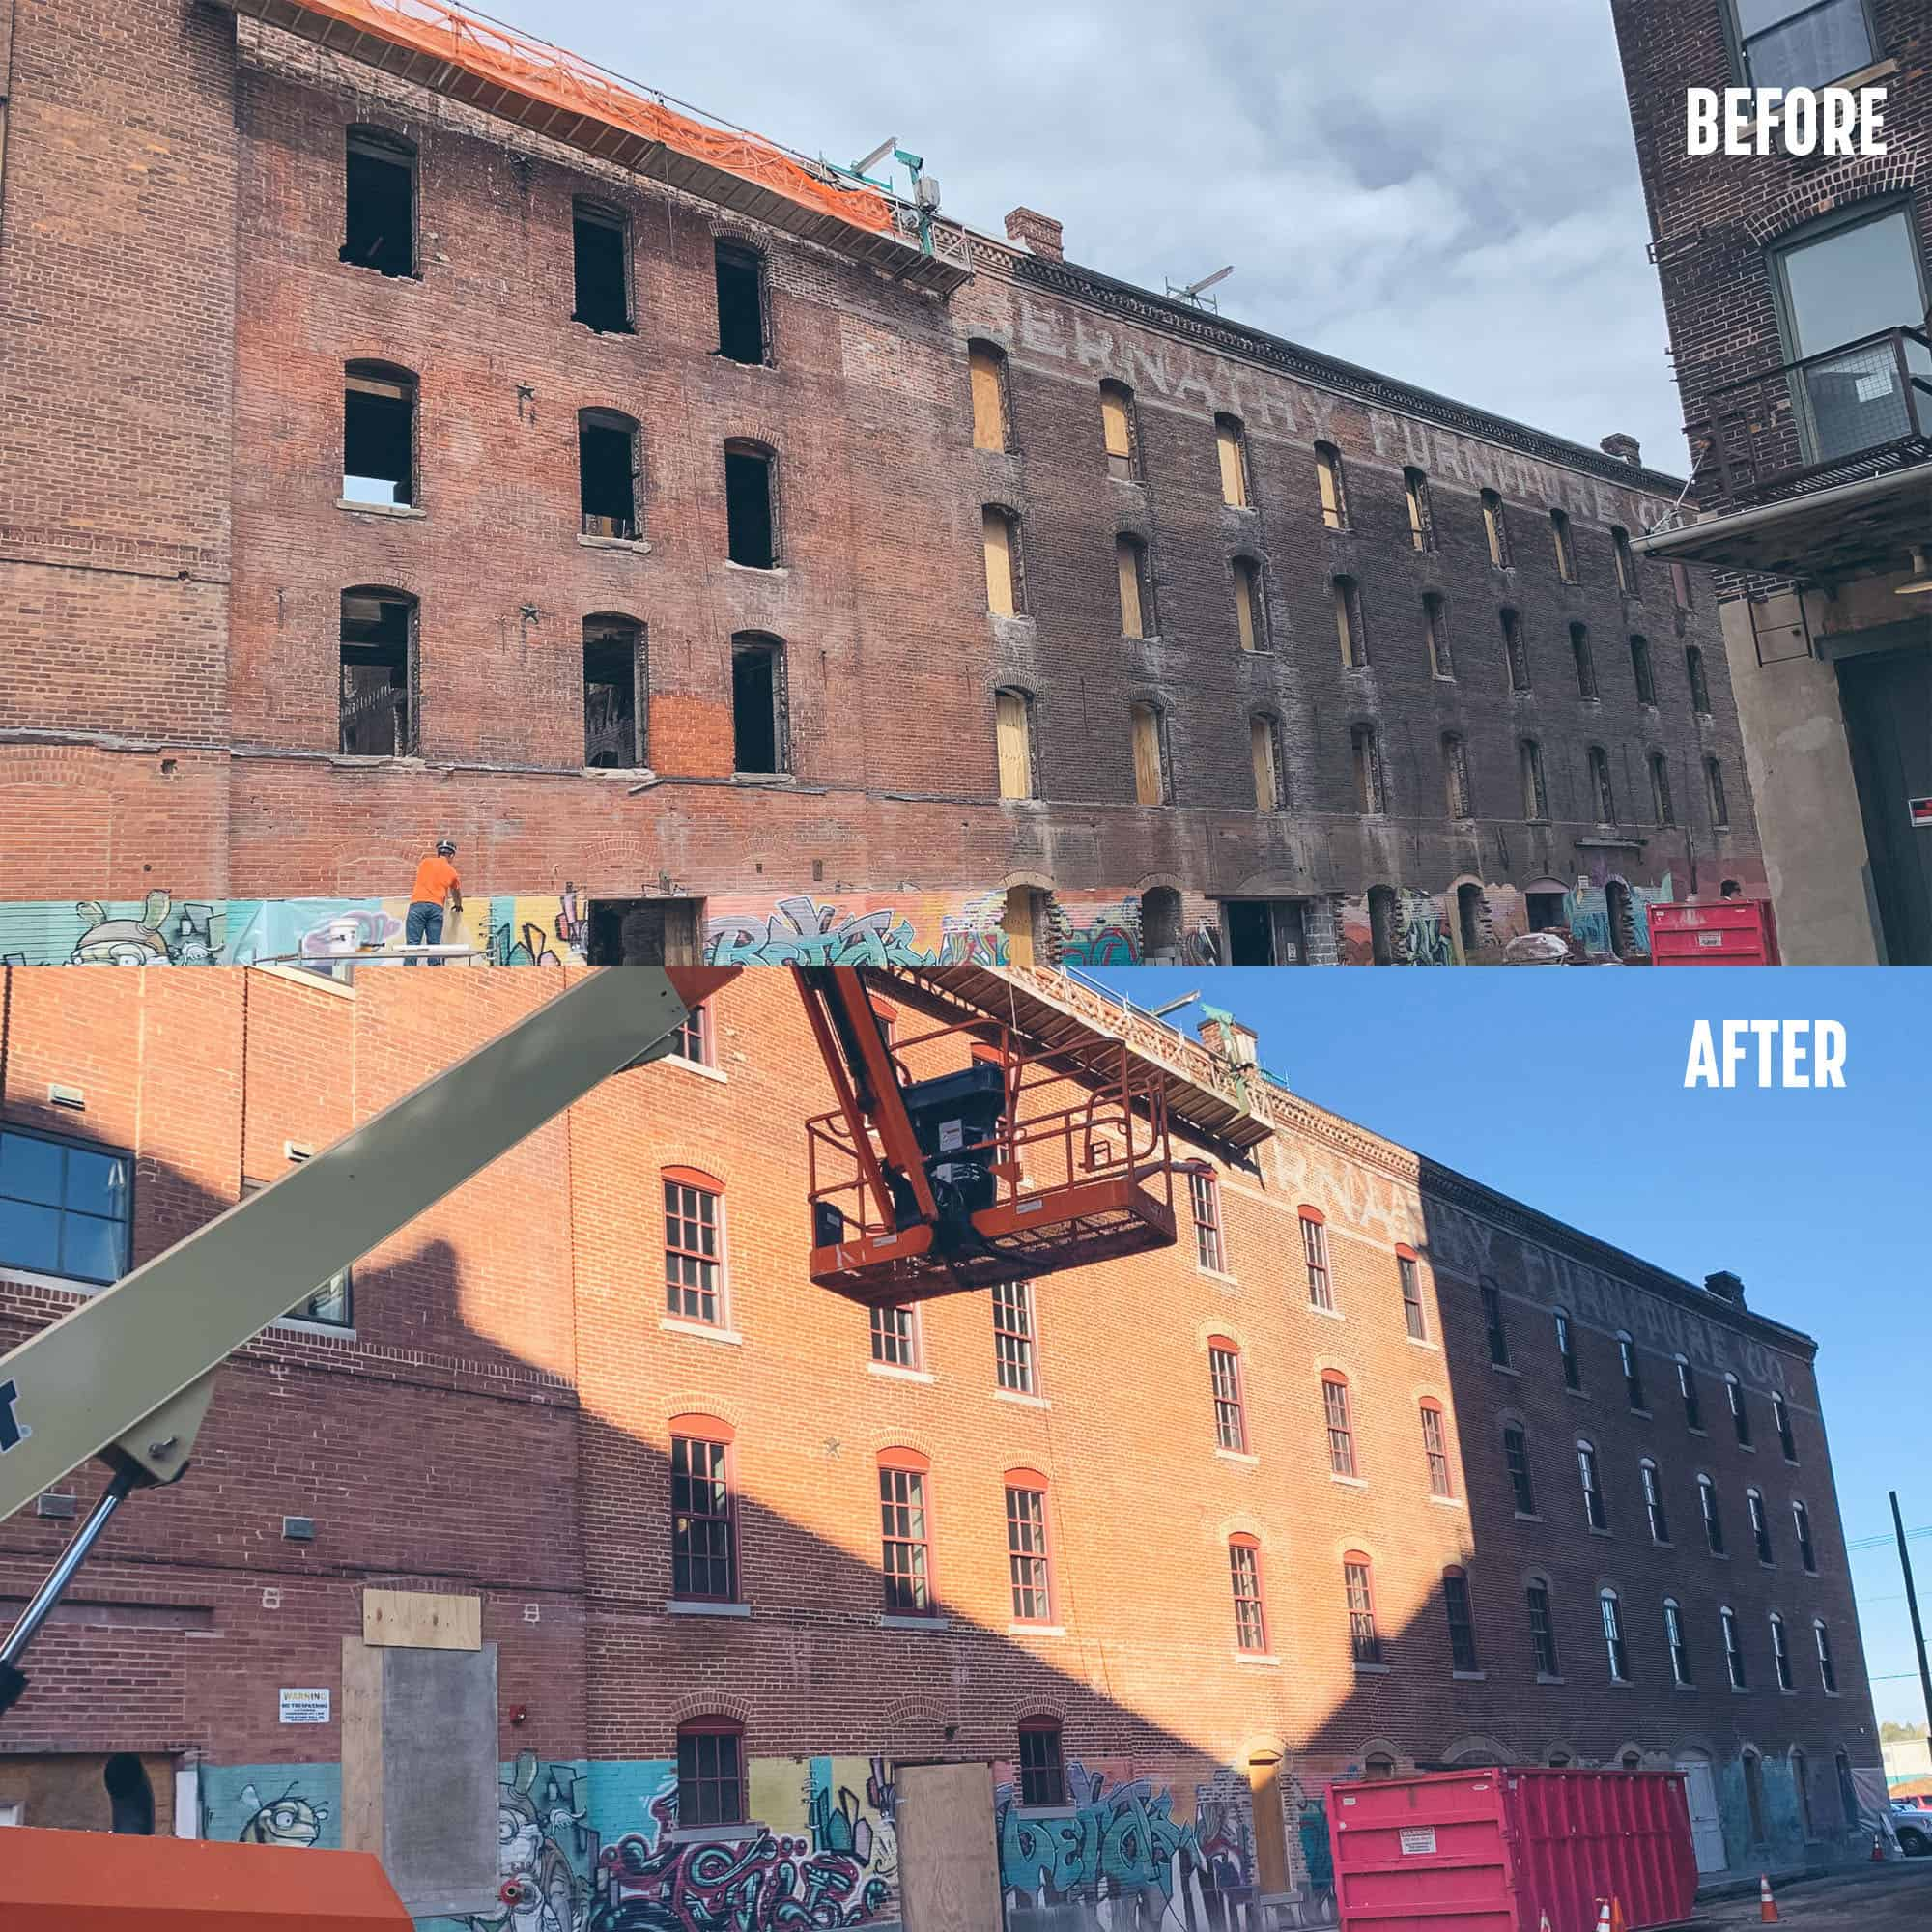 Before and after of Abernathy Building in Kansas City.